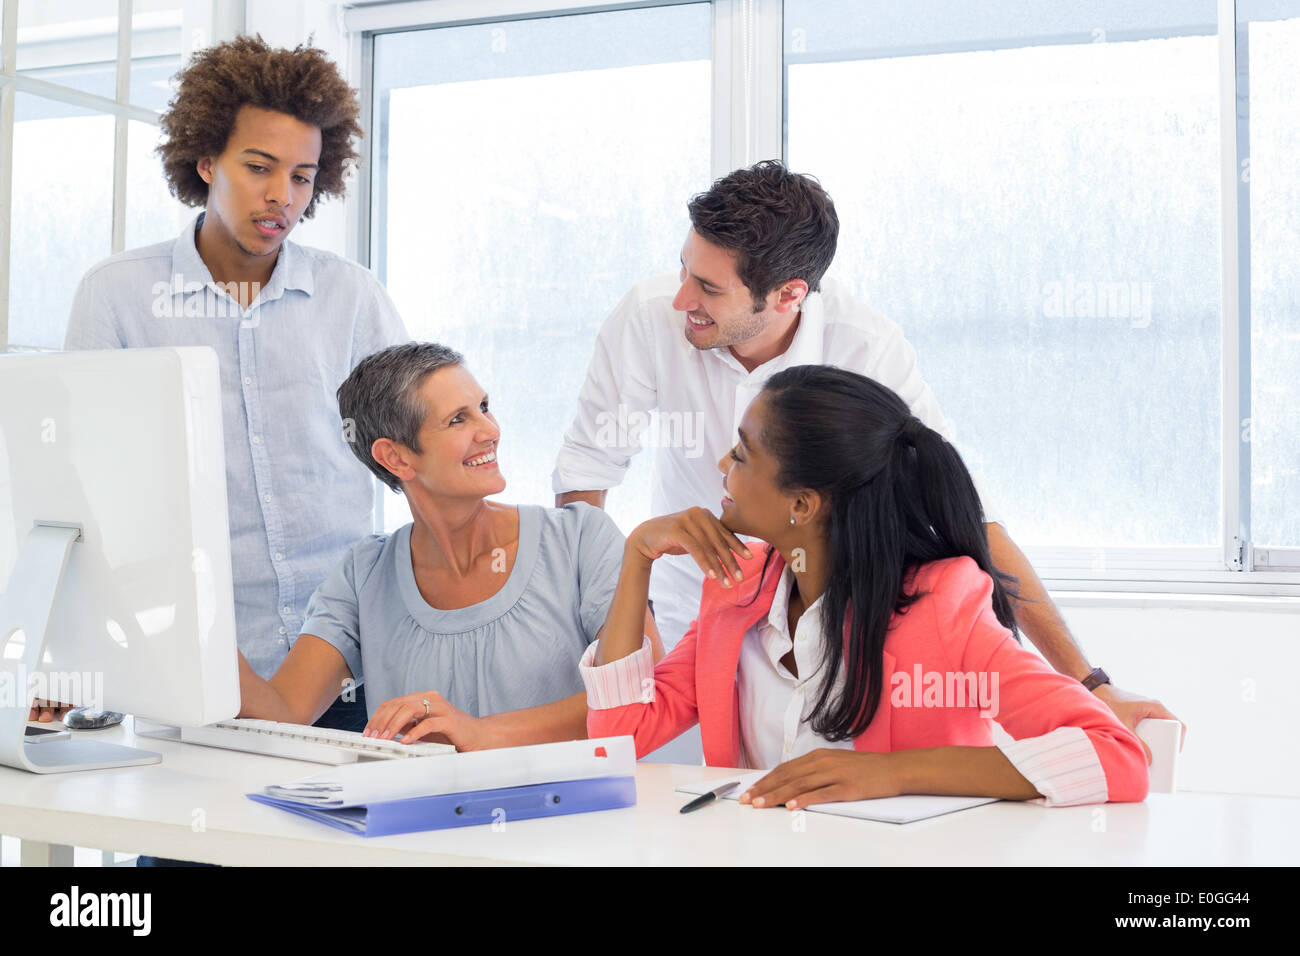 Working smiling and interacting cheerfully - Stock Image